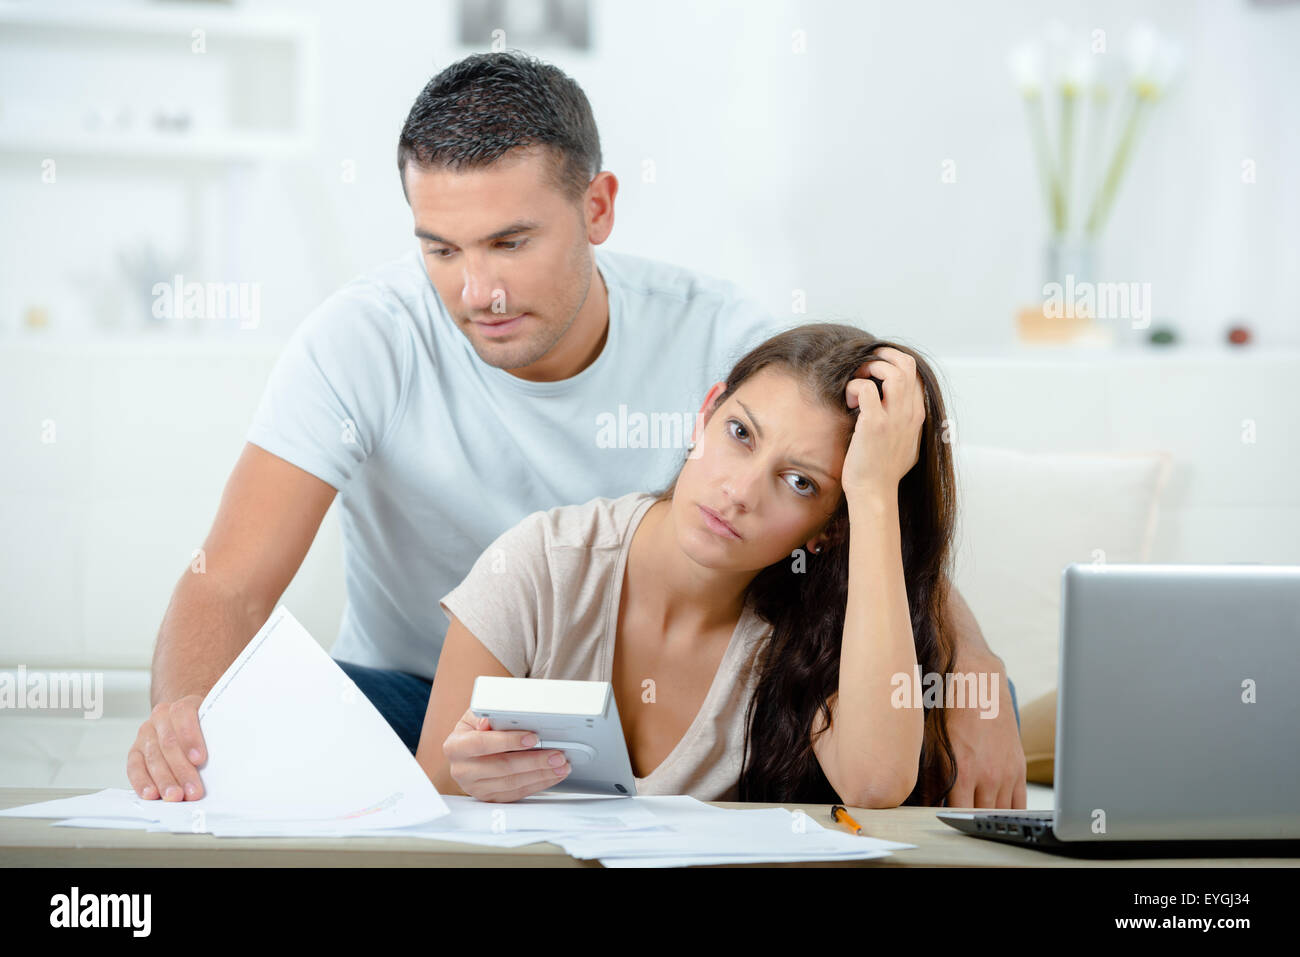 Couple with papers, calculator and computer - Stock Image